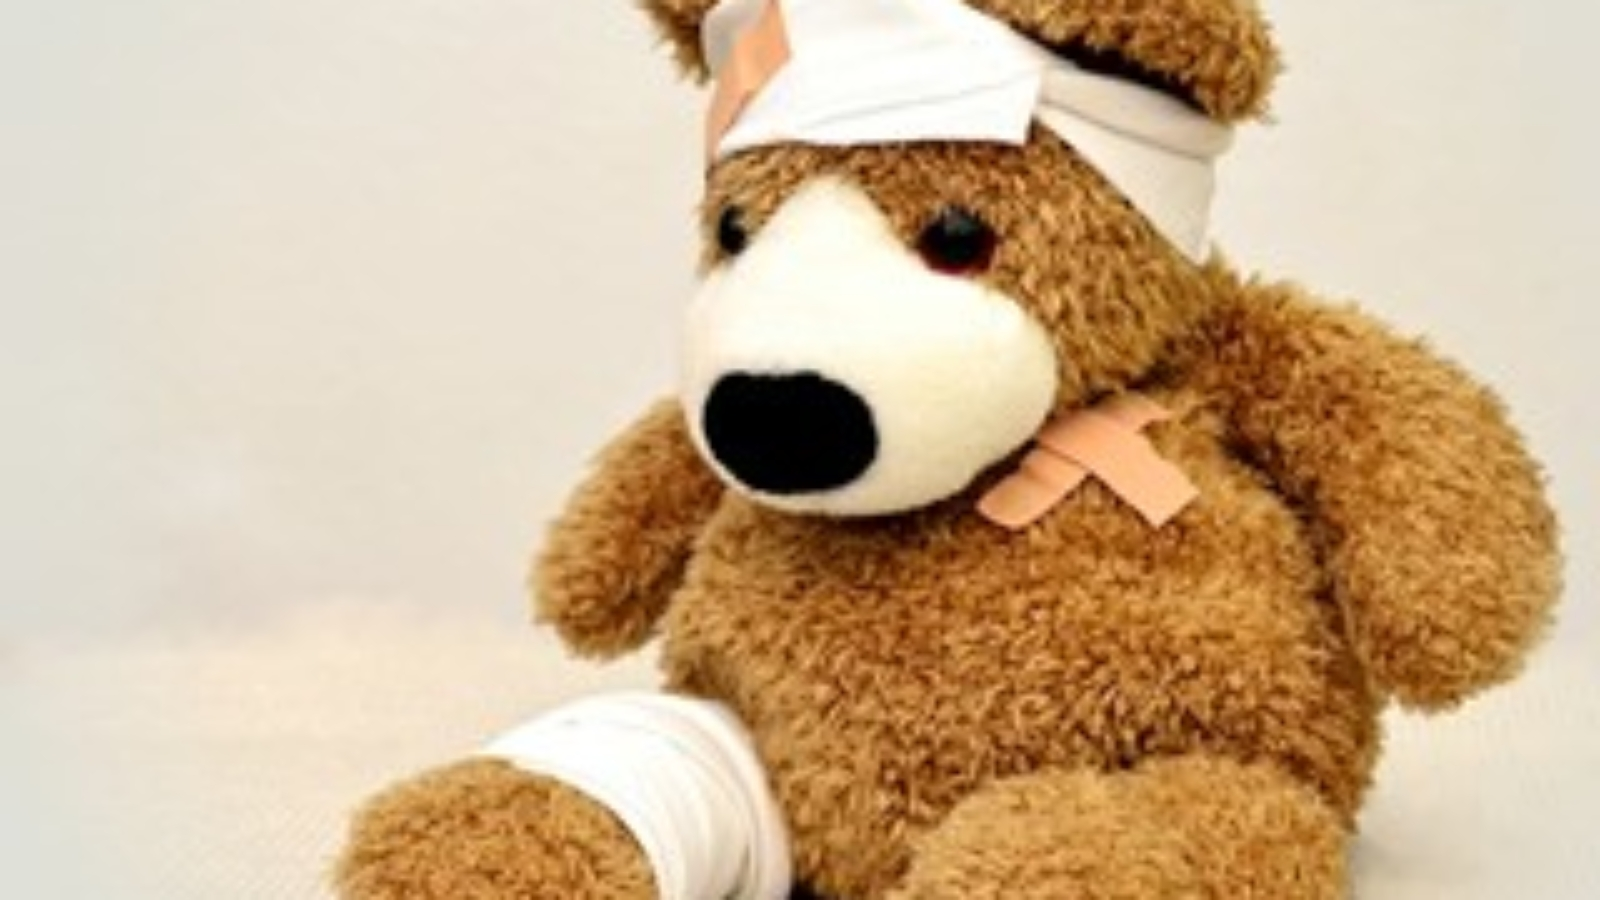 A teddy bear with injuries